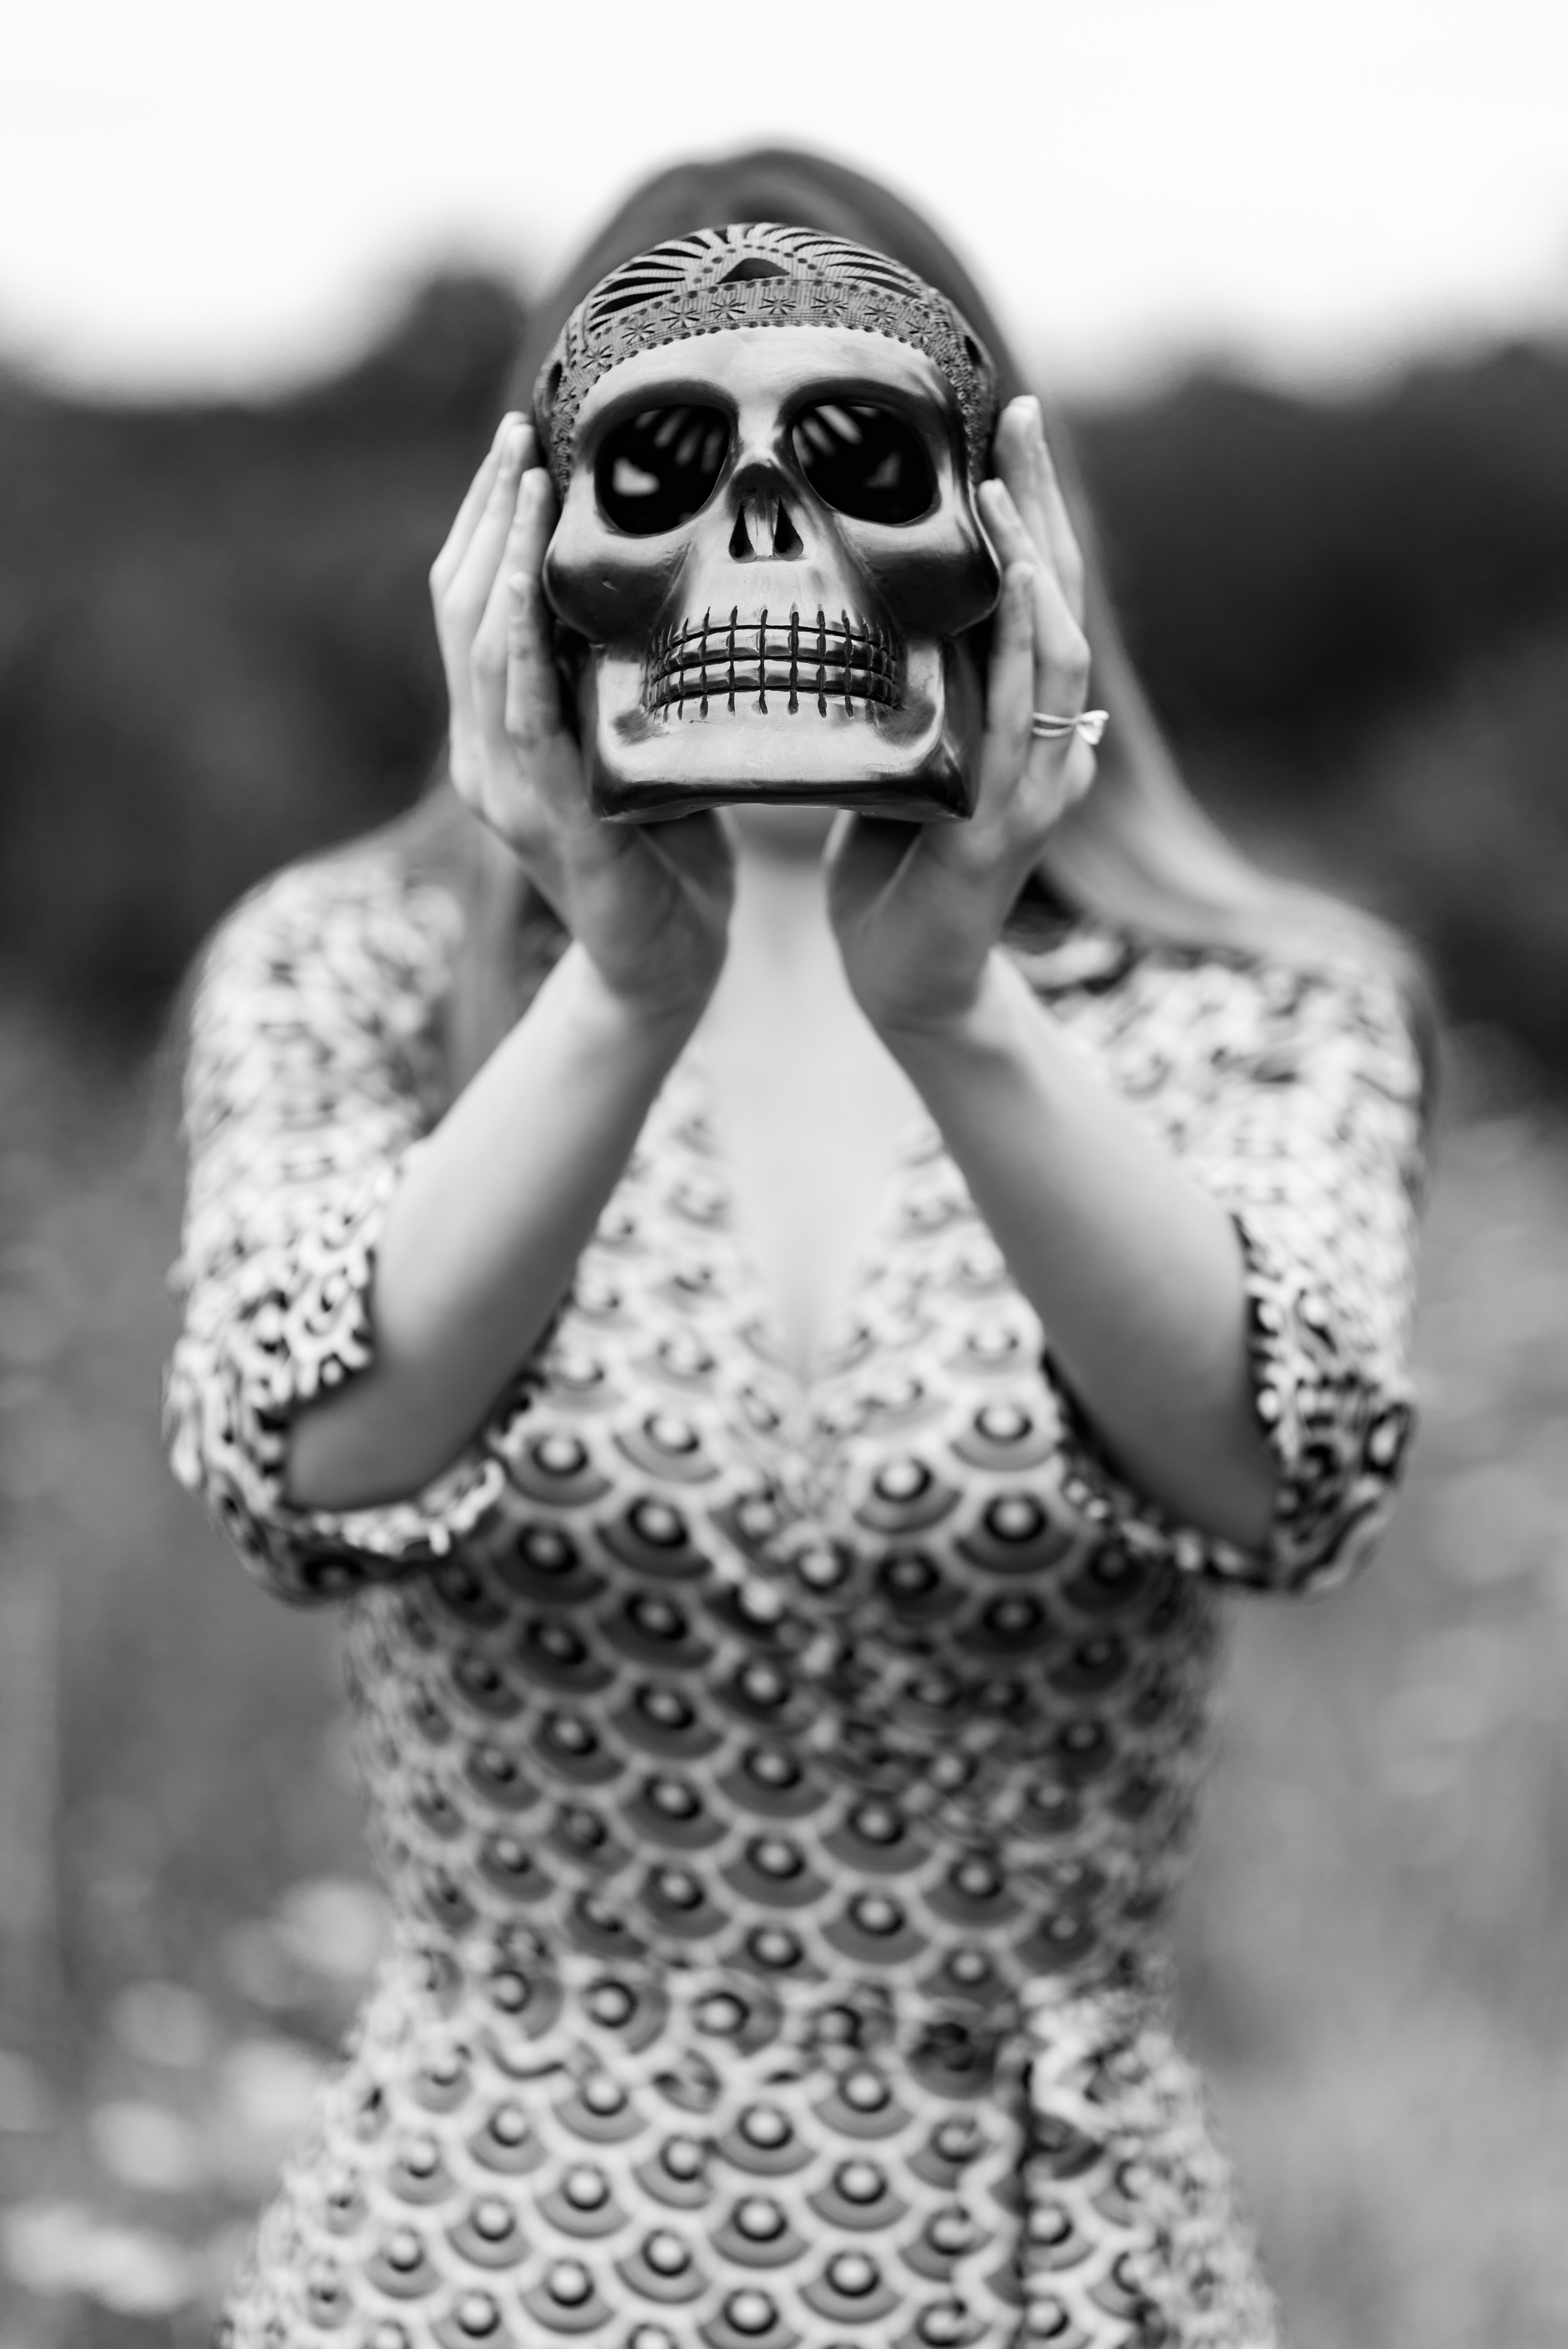 grayscale photography of woman holding skull figurine